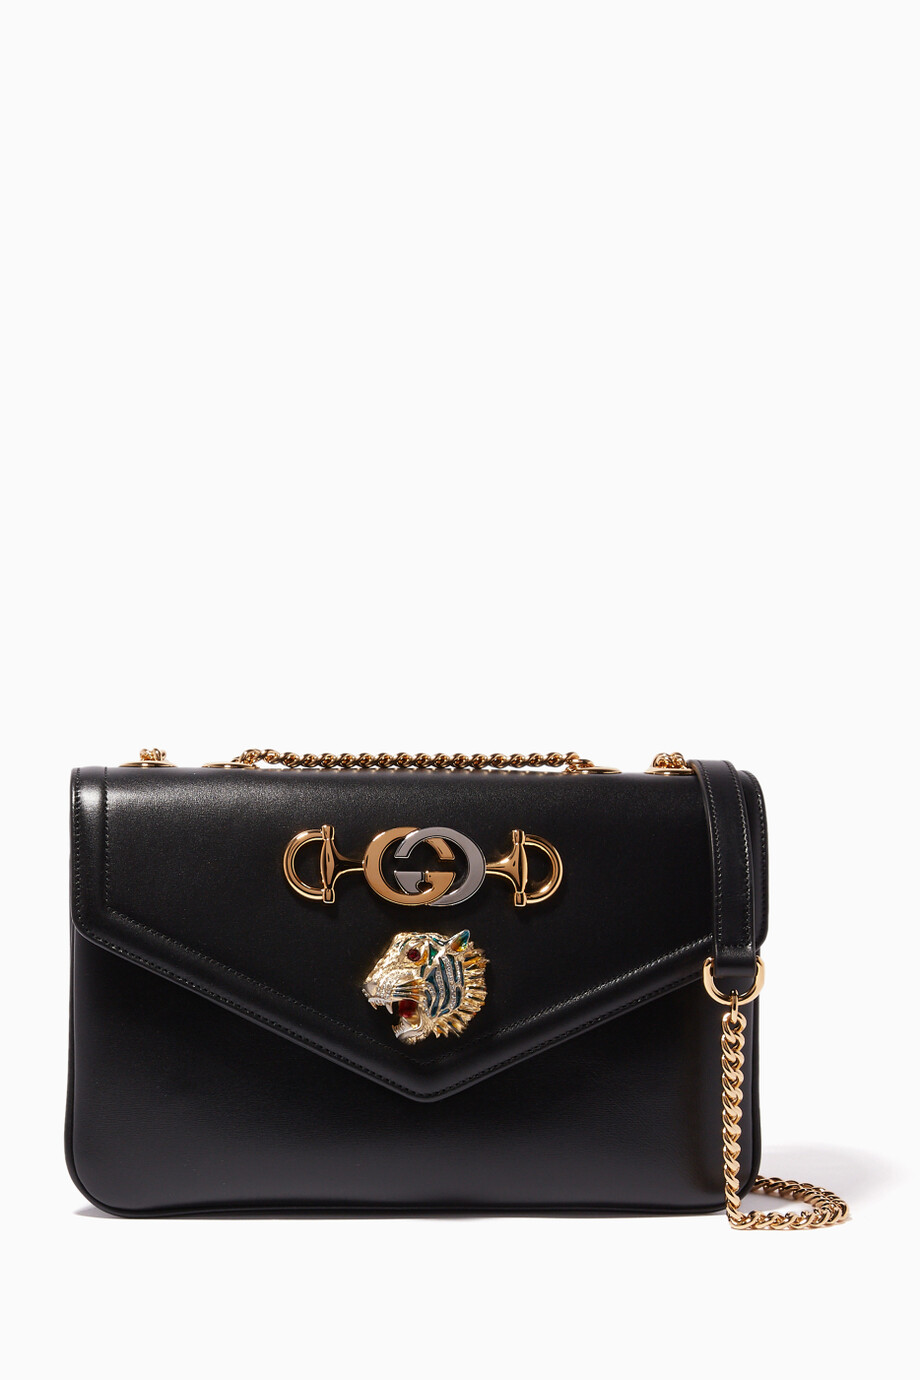 9a47fdc49 Shop Gucci Black Black Medium Rajah Shoulder Bag for Women | Ounass ...